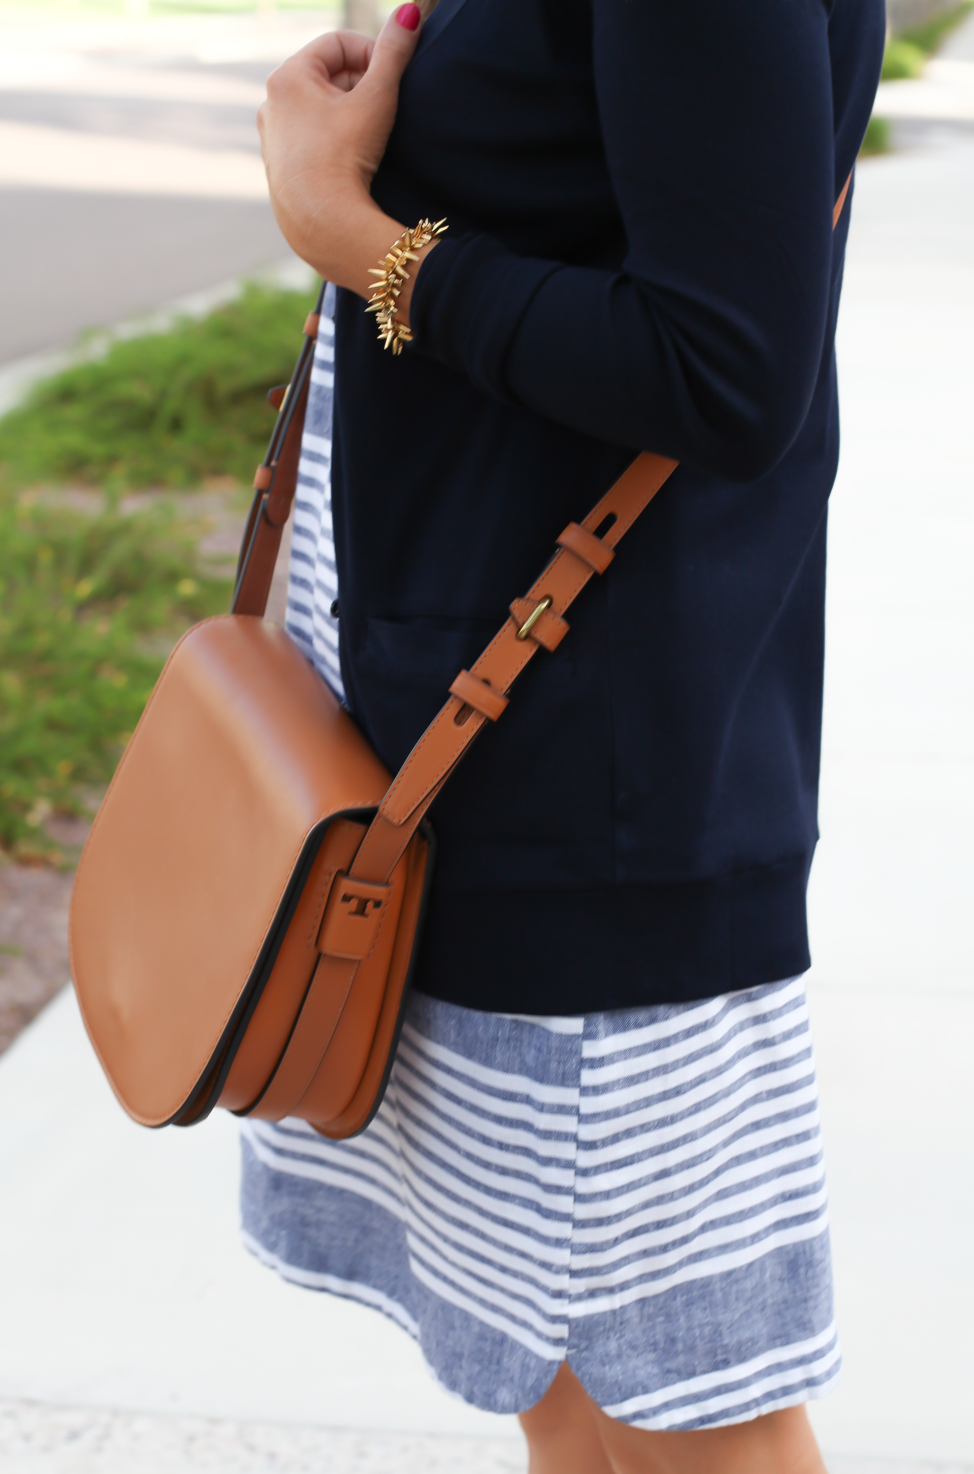 Blue Chambray White Striped Dress, Navy Cotton Cardigan, Tan Suede Espadrilles, Tan Leather Crossbody, Old Navy, J.Crew, Chloe, Tory Burch 21